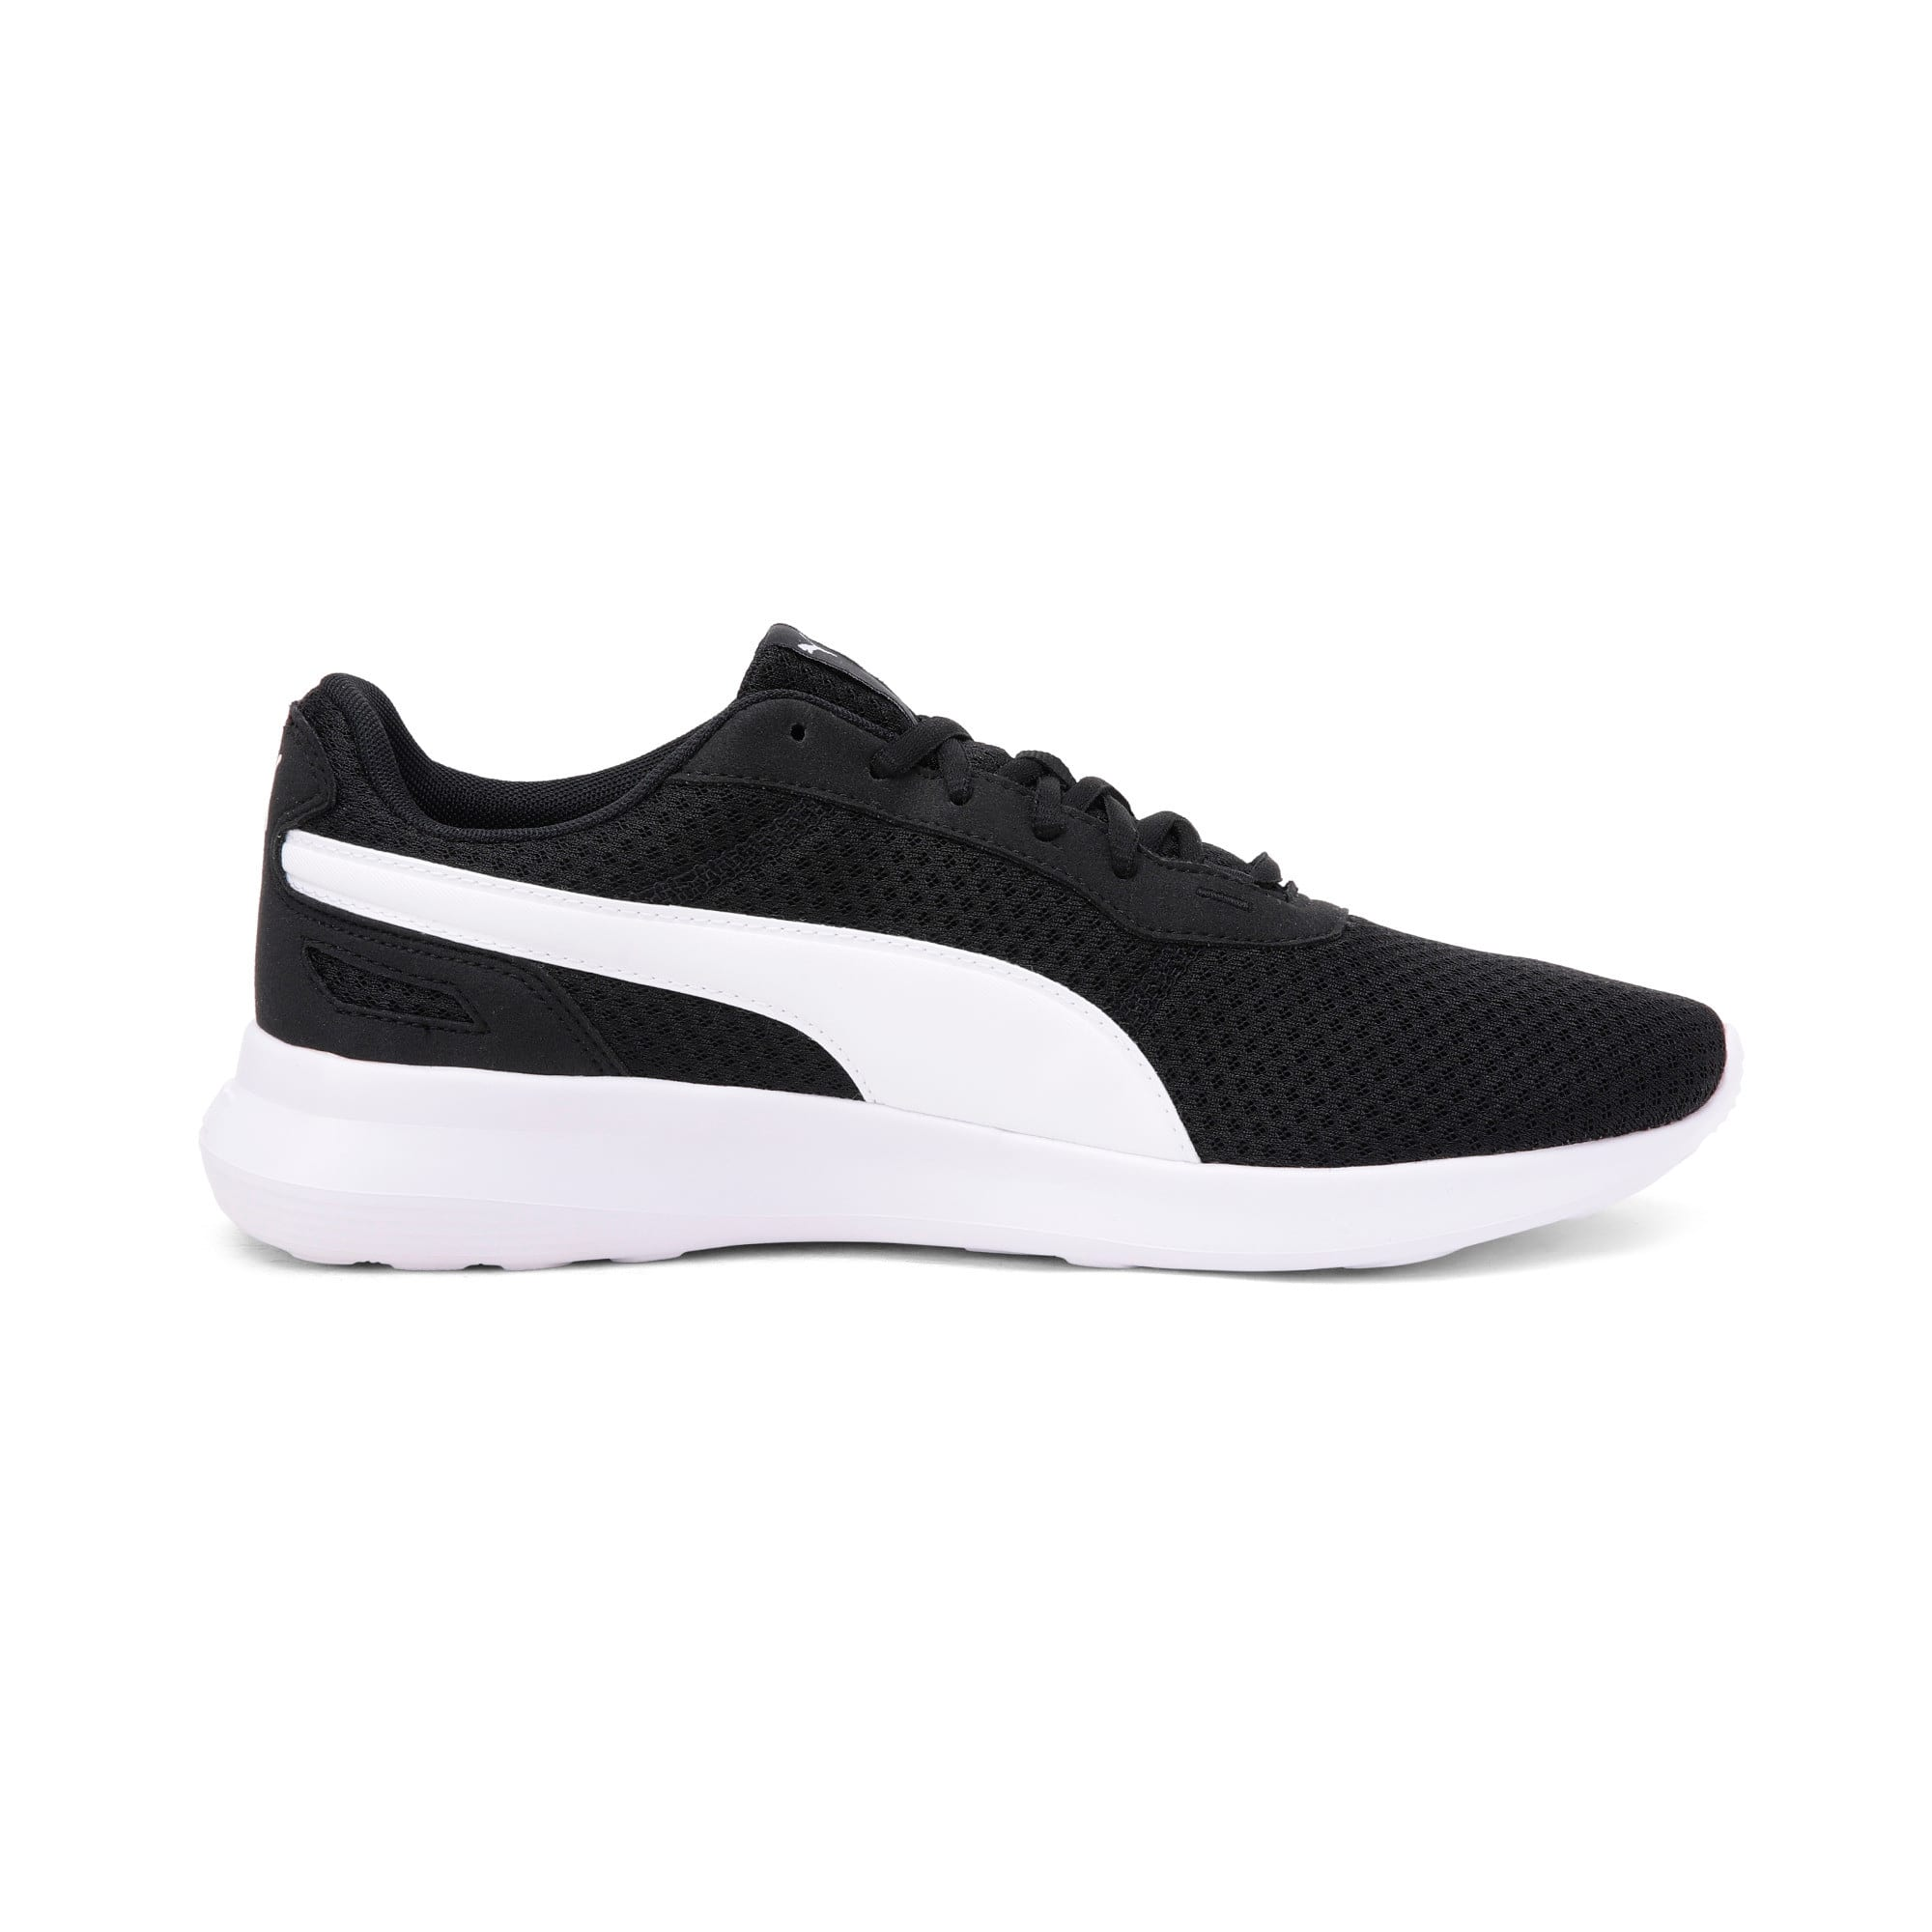 ST Activate Sneakers, Puma Black-Puma White, large